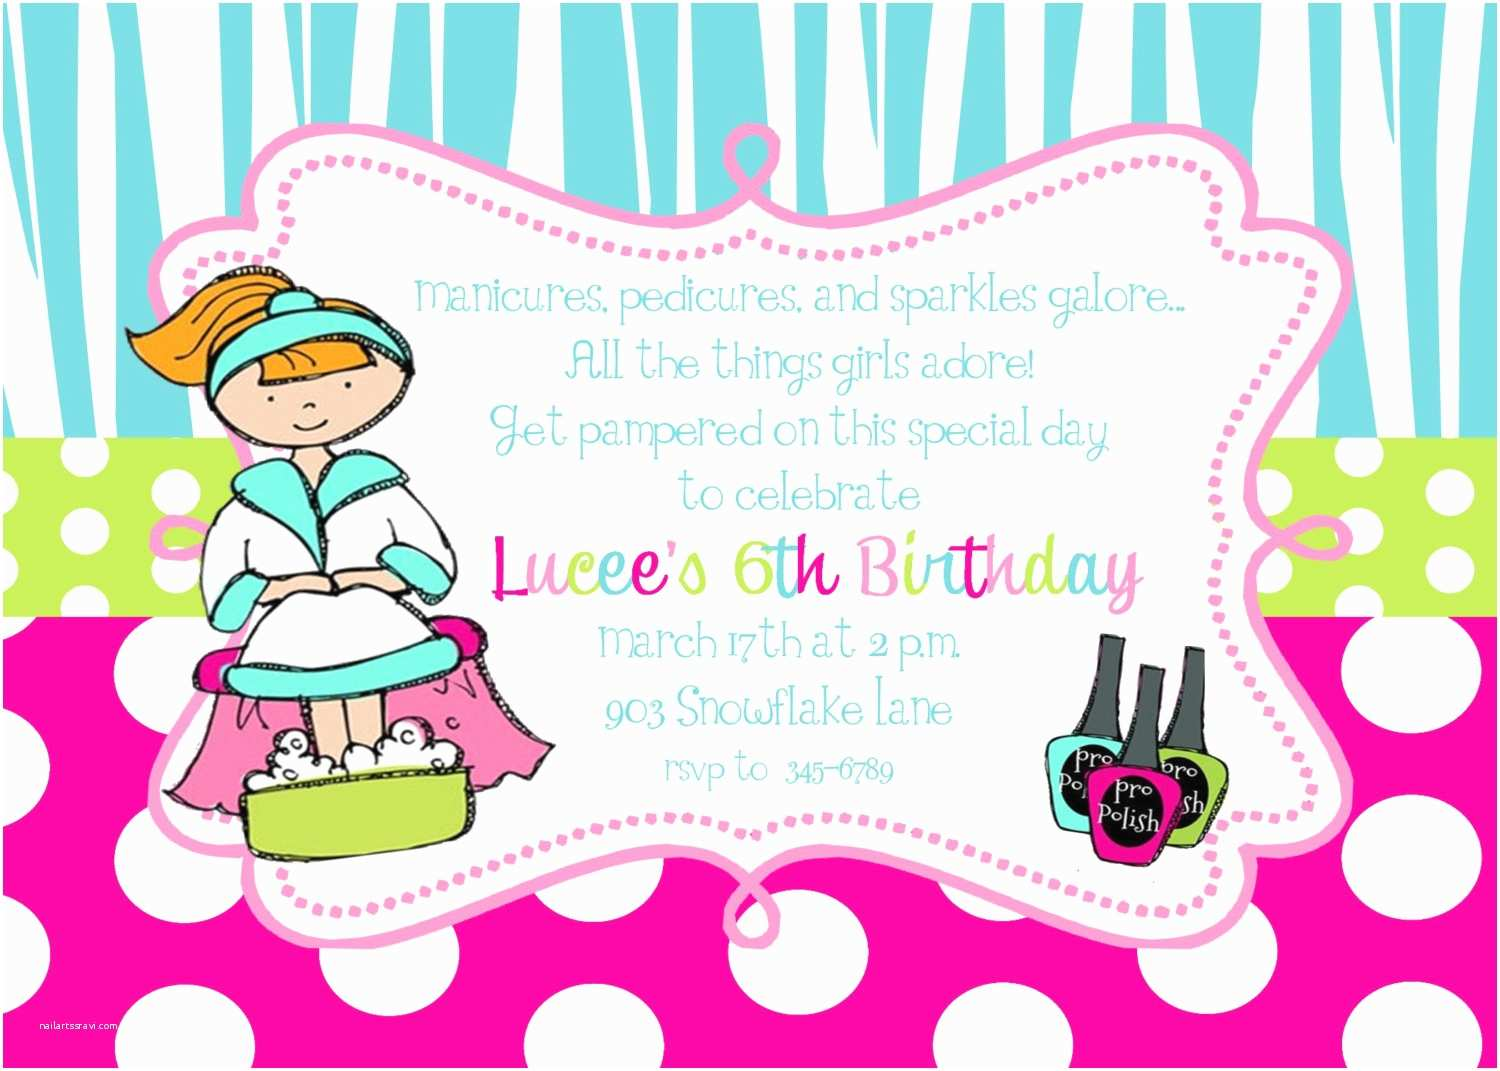 Pamper Party Invitations 12 Spa Pamper Birthday Party Invitations with Envelopes